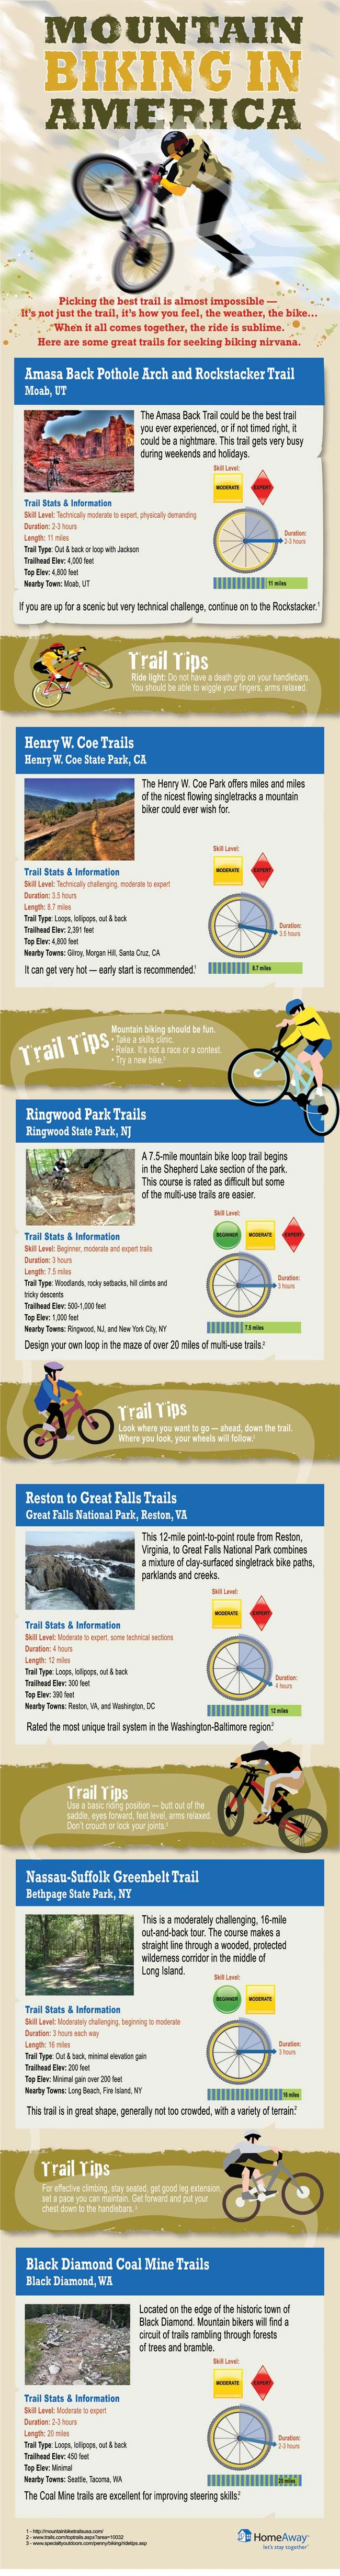 infographic of mountain biking in america - best trails for mountian biking in the US